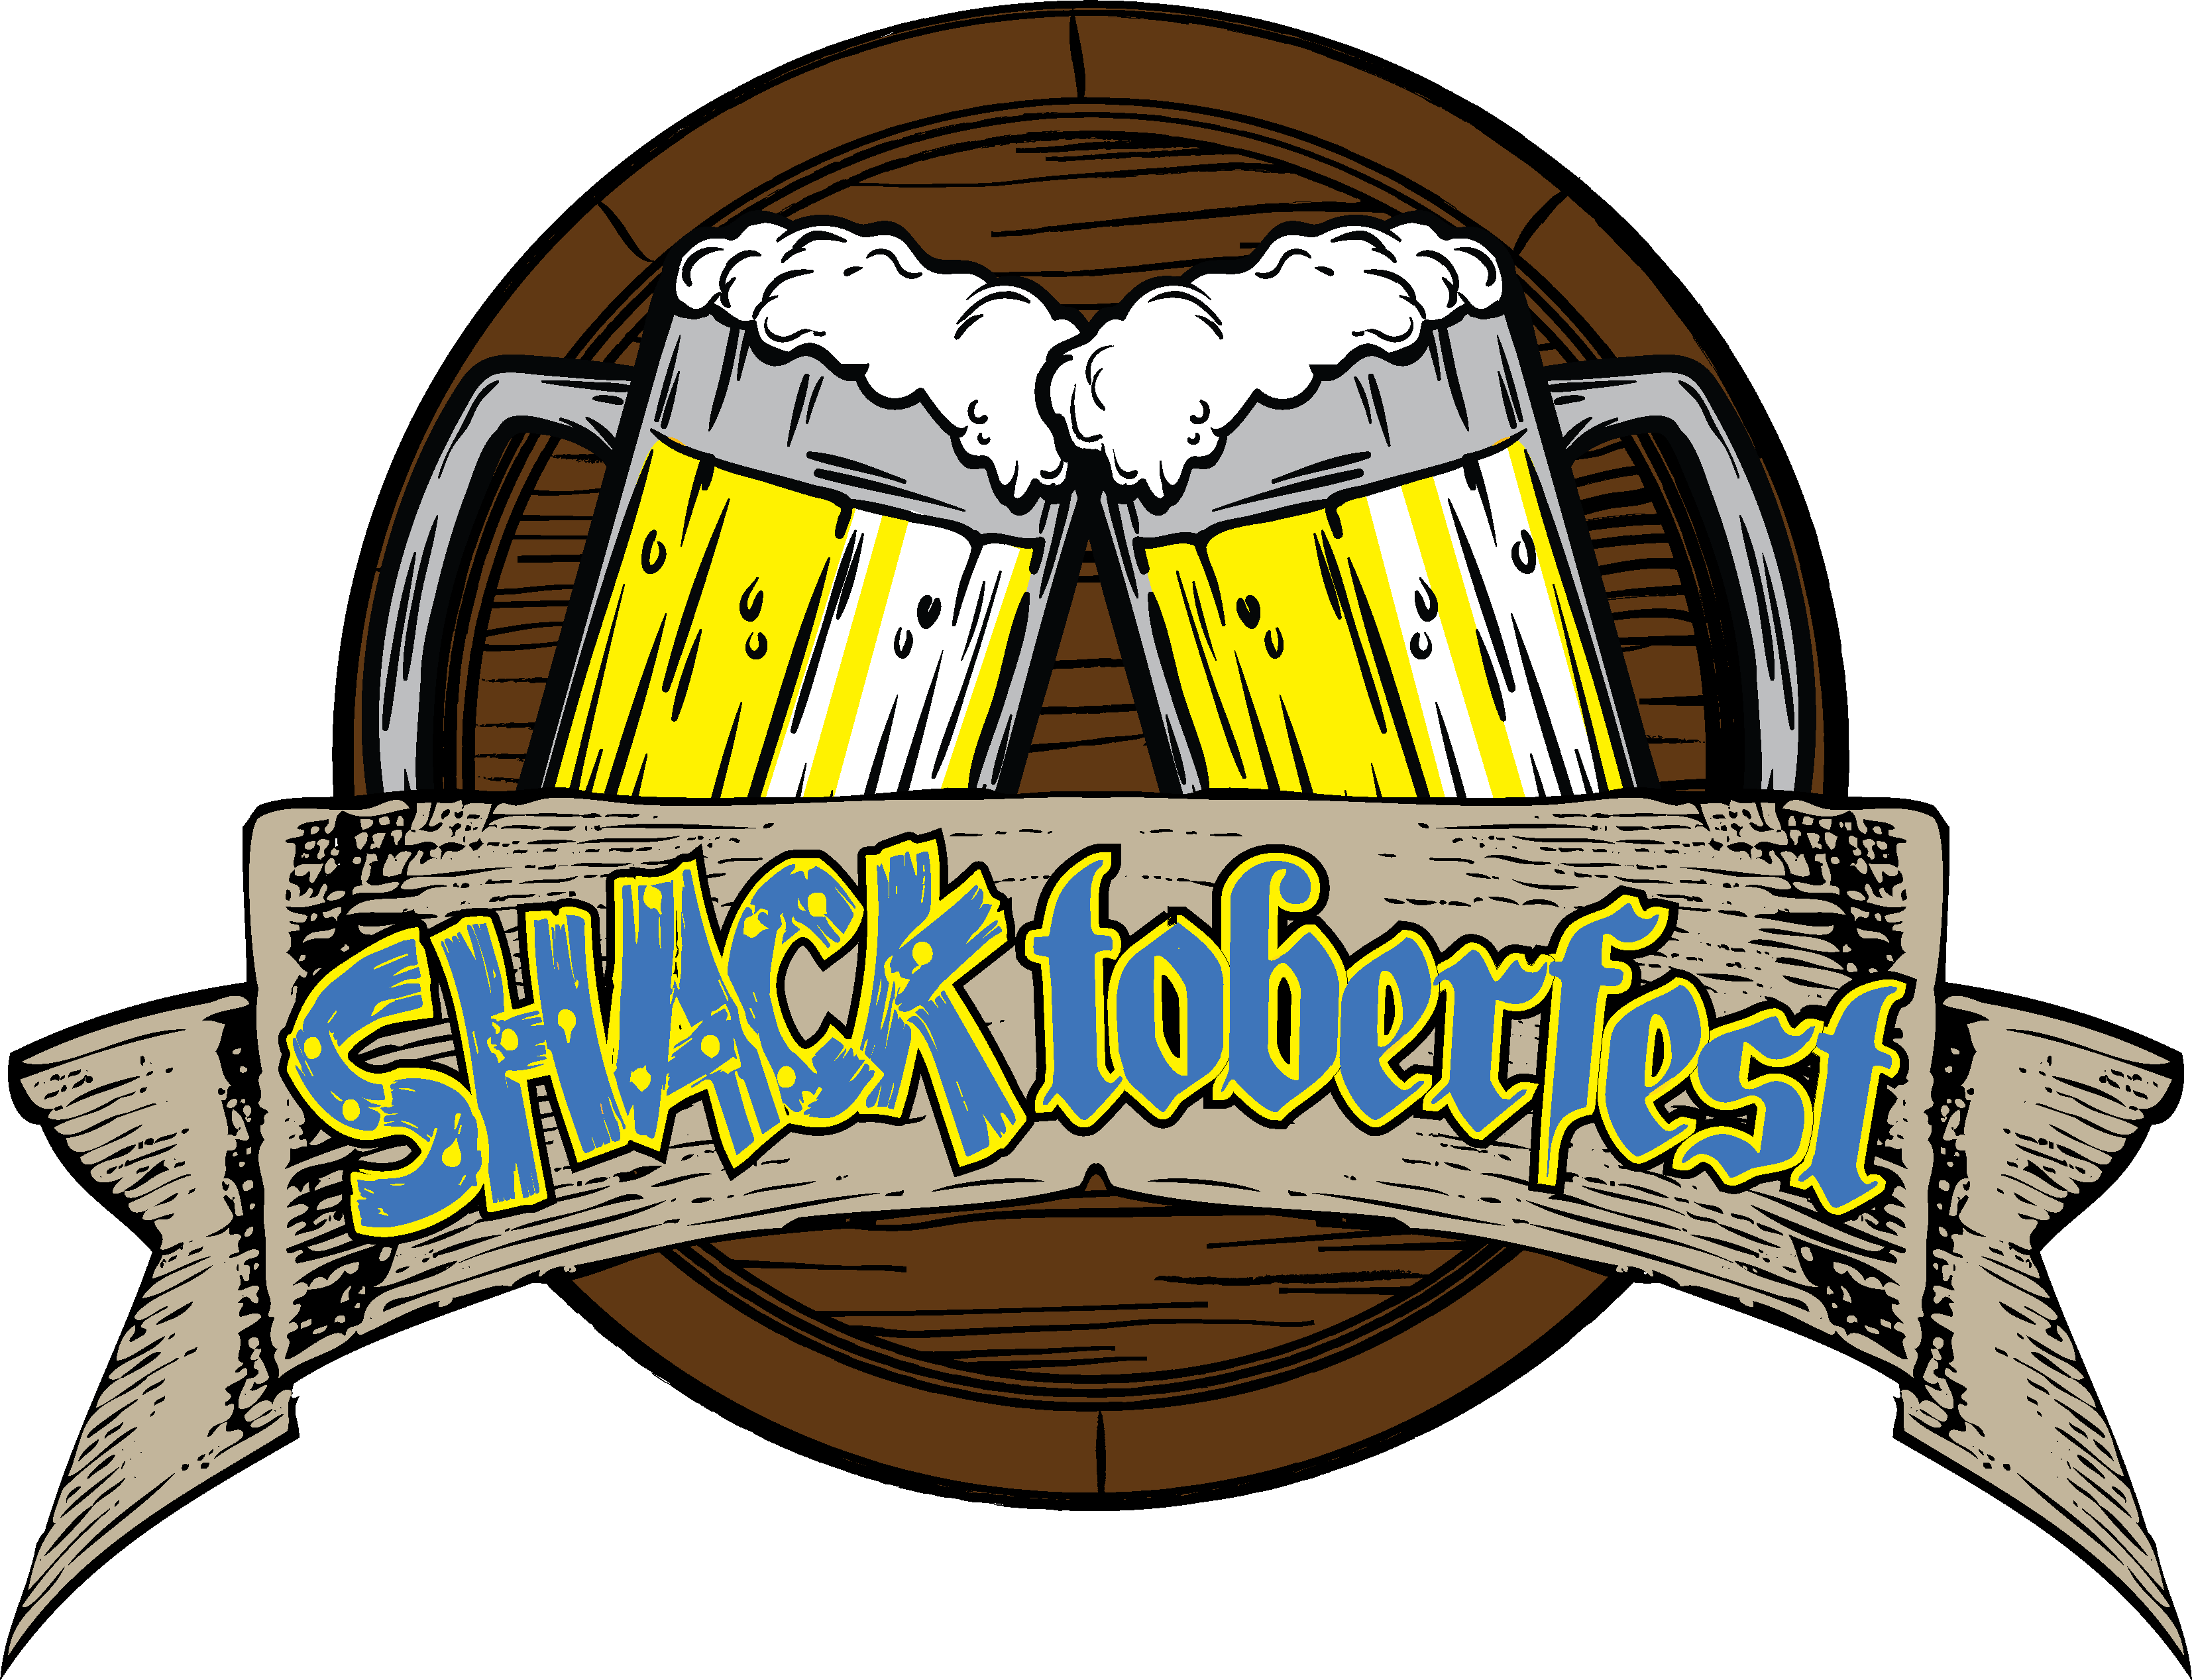 Tickets for Shacktoberfest in Virginia Beach from ShowClix